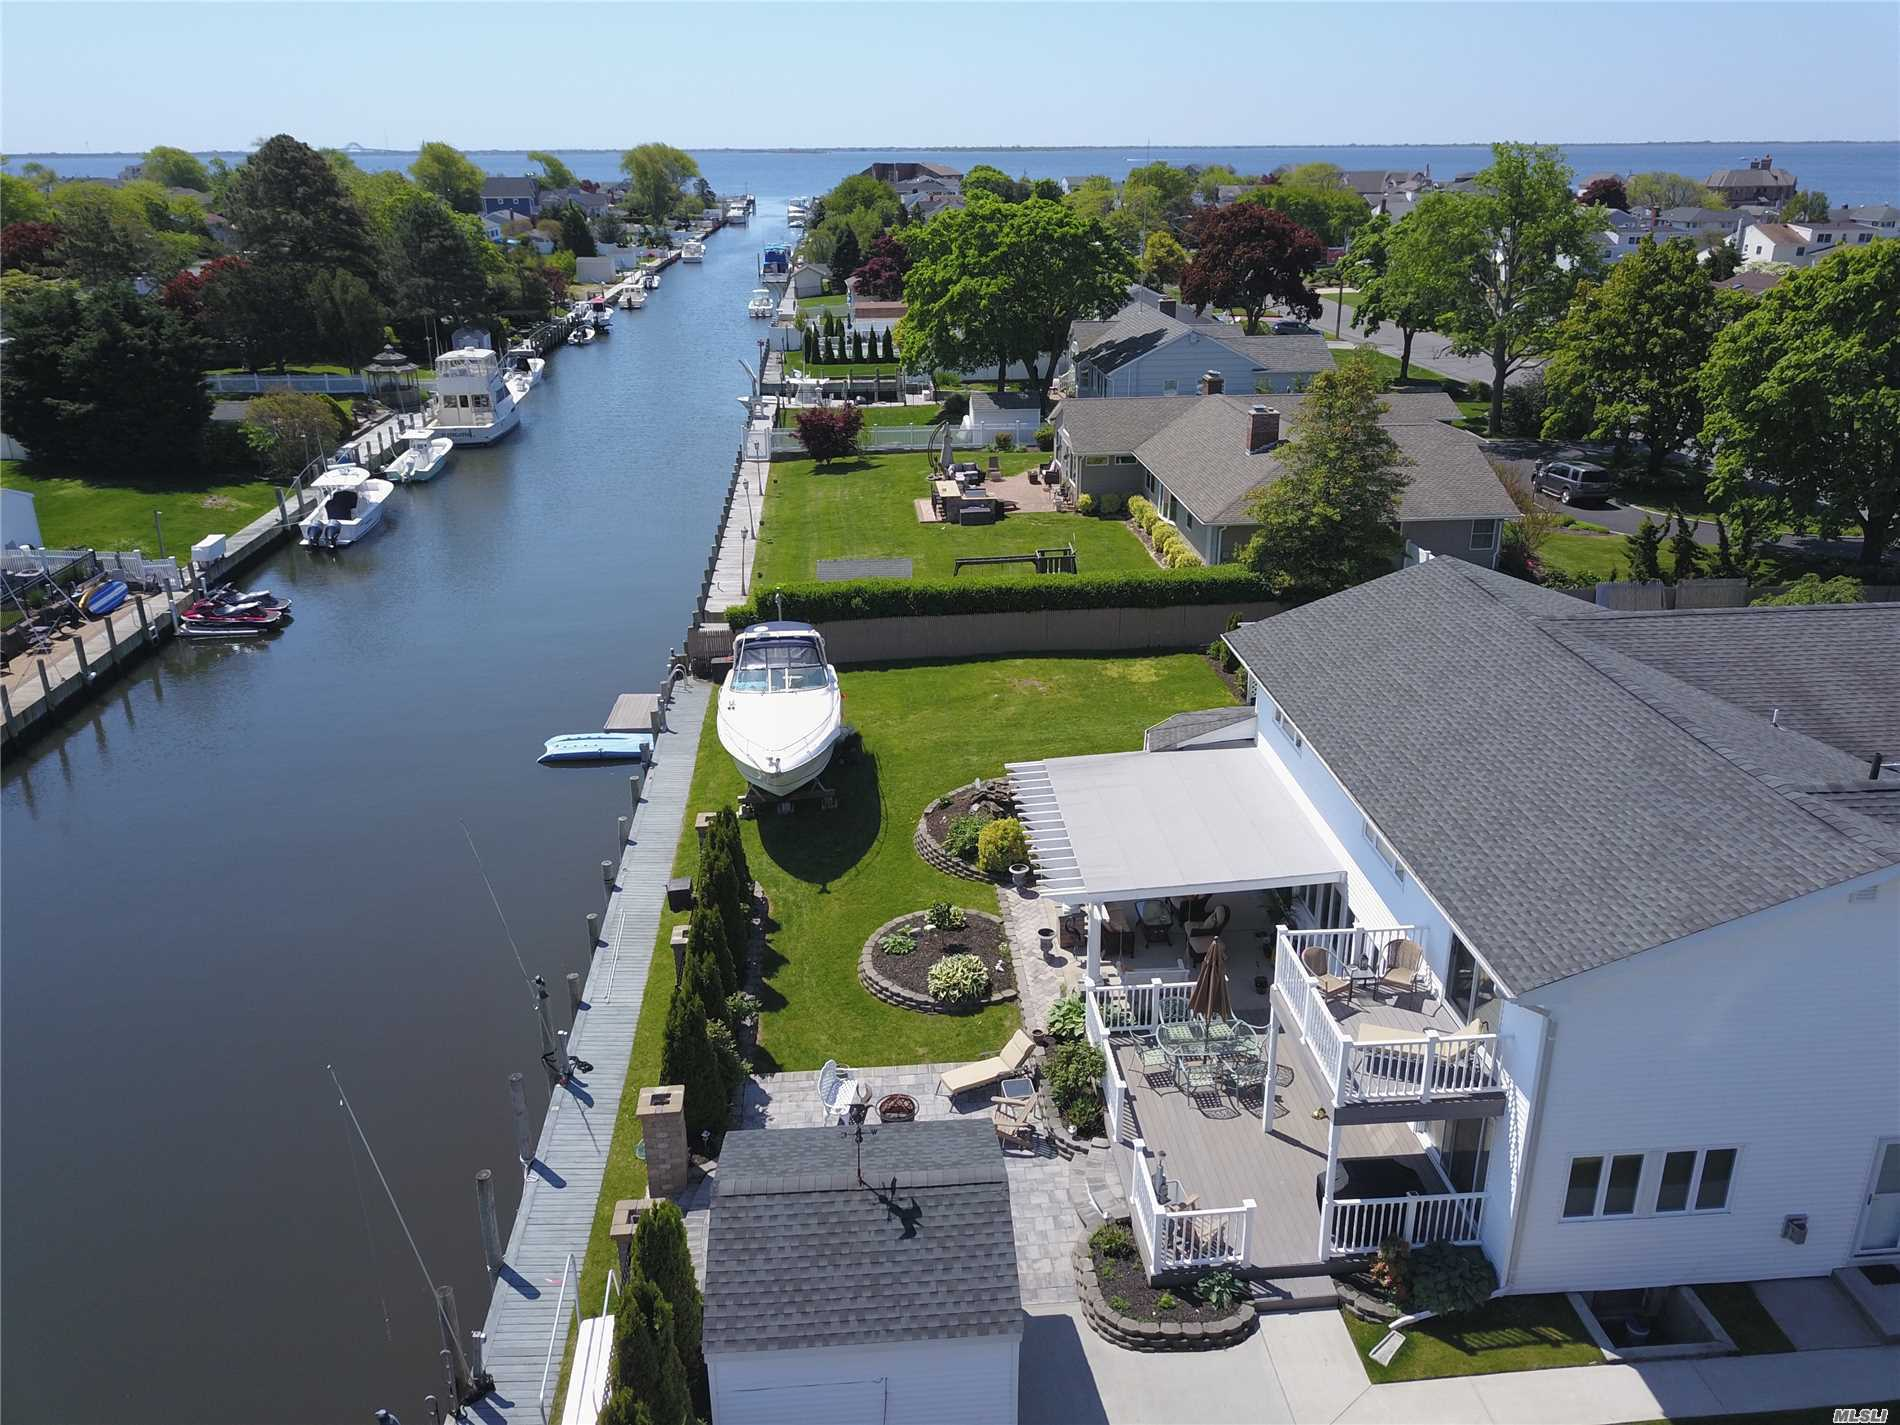 Sunsational Waterfront Gem! 112 Feet Navy Bulk Heading On Magnificently Large Property Located In Desired Willetts Point/West Islip School. Home Boasts Updated Kitchen W/Stainless Steel Appliances, & Granite Counters Open Concept W/Large Dining Rm, & Formal Living Rm. Den W/Gas Fireplace, Mud Rm, Laundry, 2 Car Garage W/Rm For Storage. Master Suite W/Wic & En Suite. Separate Quarters For Nanny Or Grandma . 2nd Floor Includes 4 Brs, Foyer, 2 F Baths & Great Rm/Media Rm.One Beam Constr. Must See!